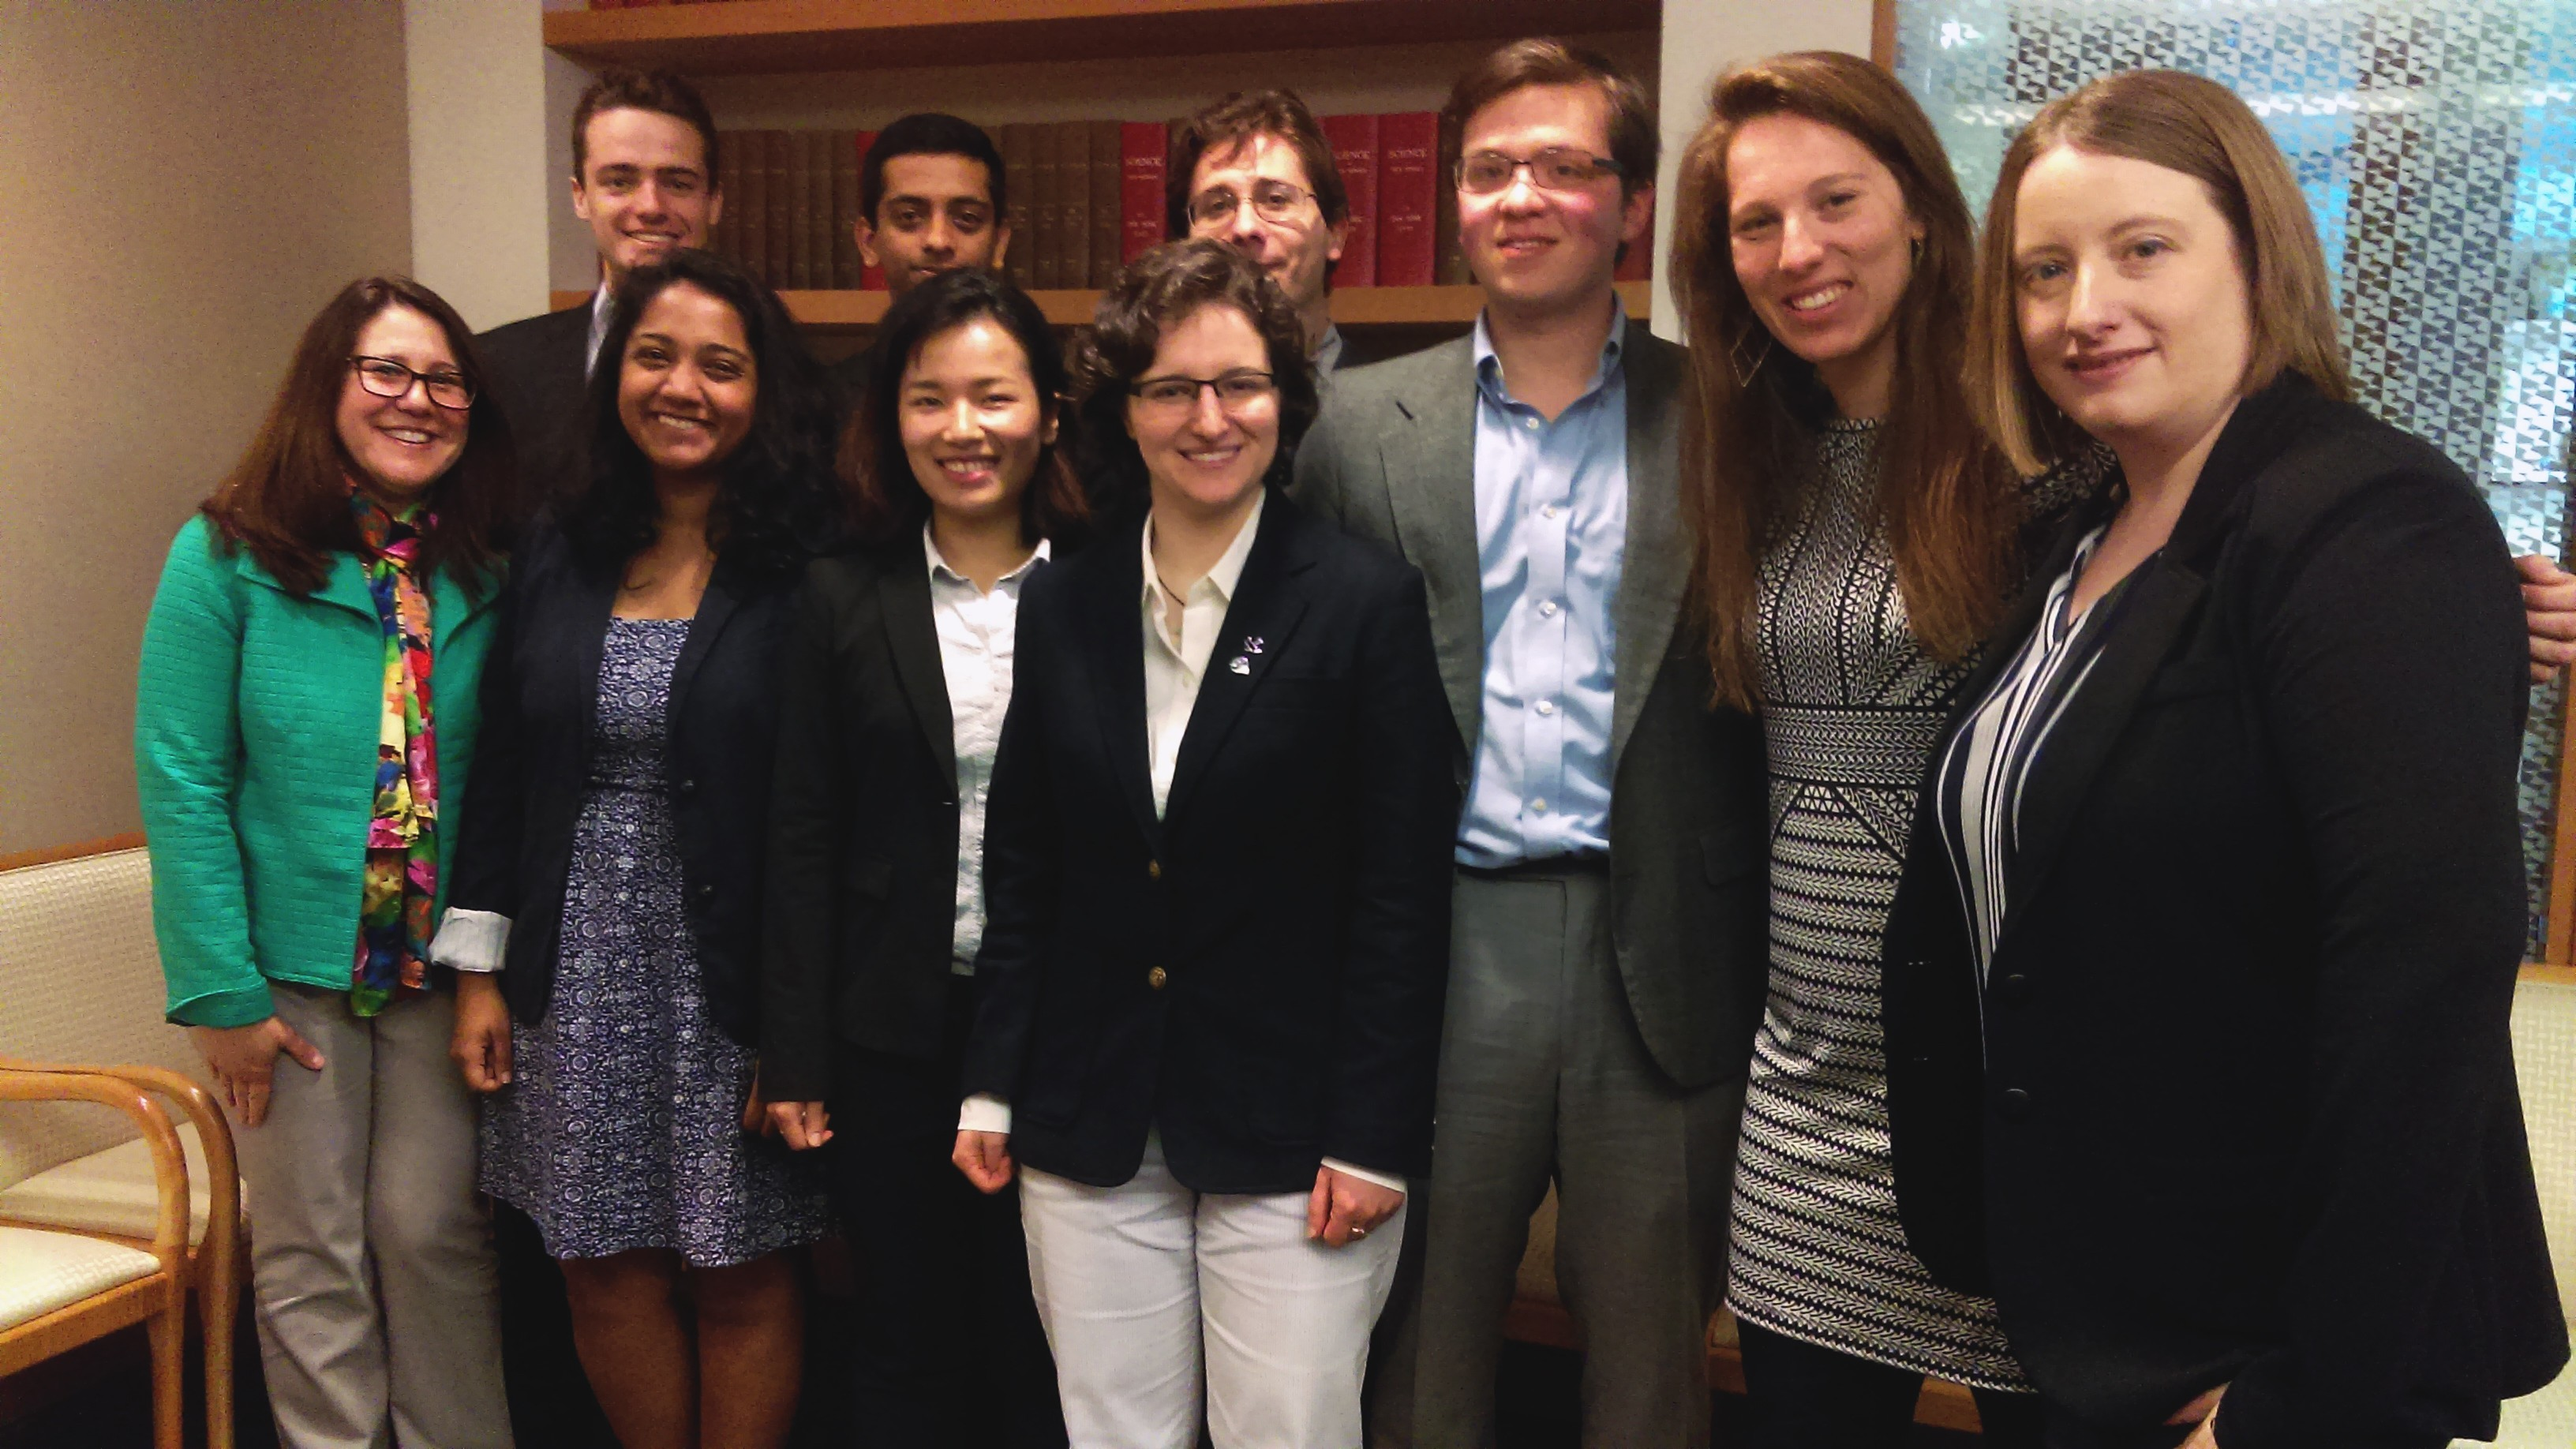 Leshner Leadership Fellow Noelle Selin (right) with her students during a visit to AAAS Headquarters